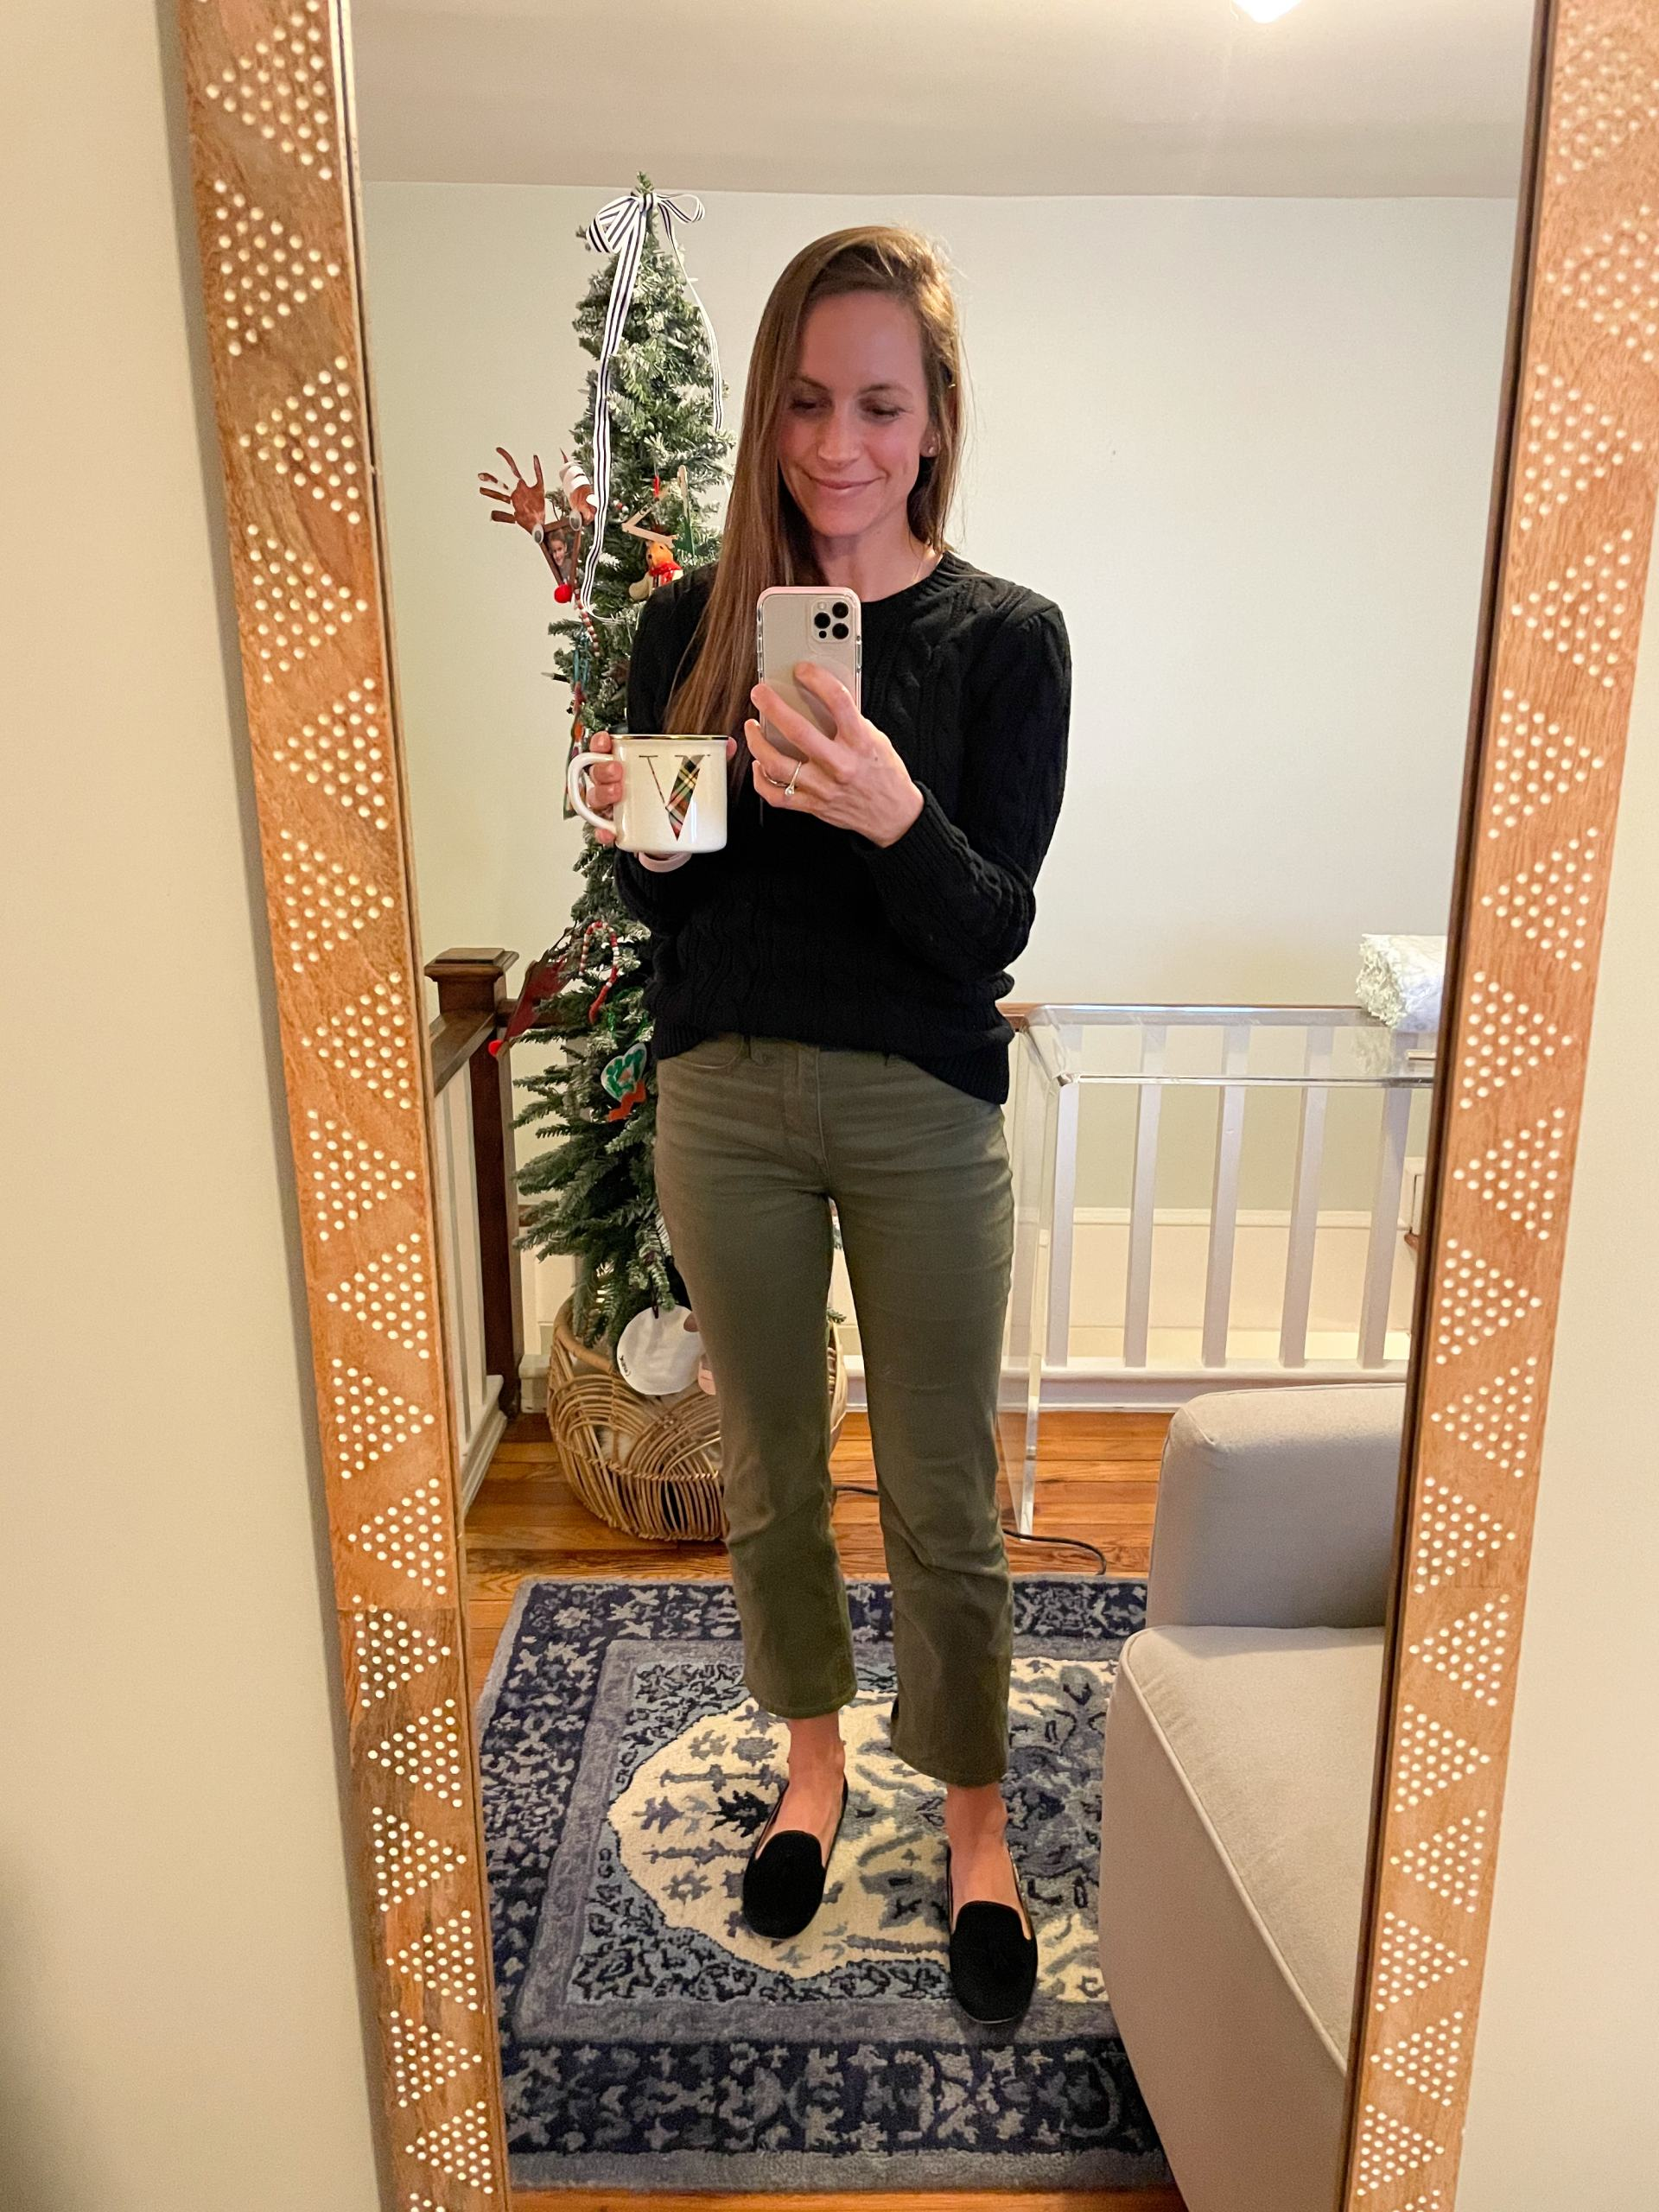 olive green pants and black sweater